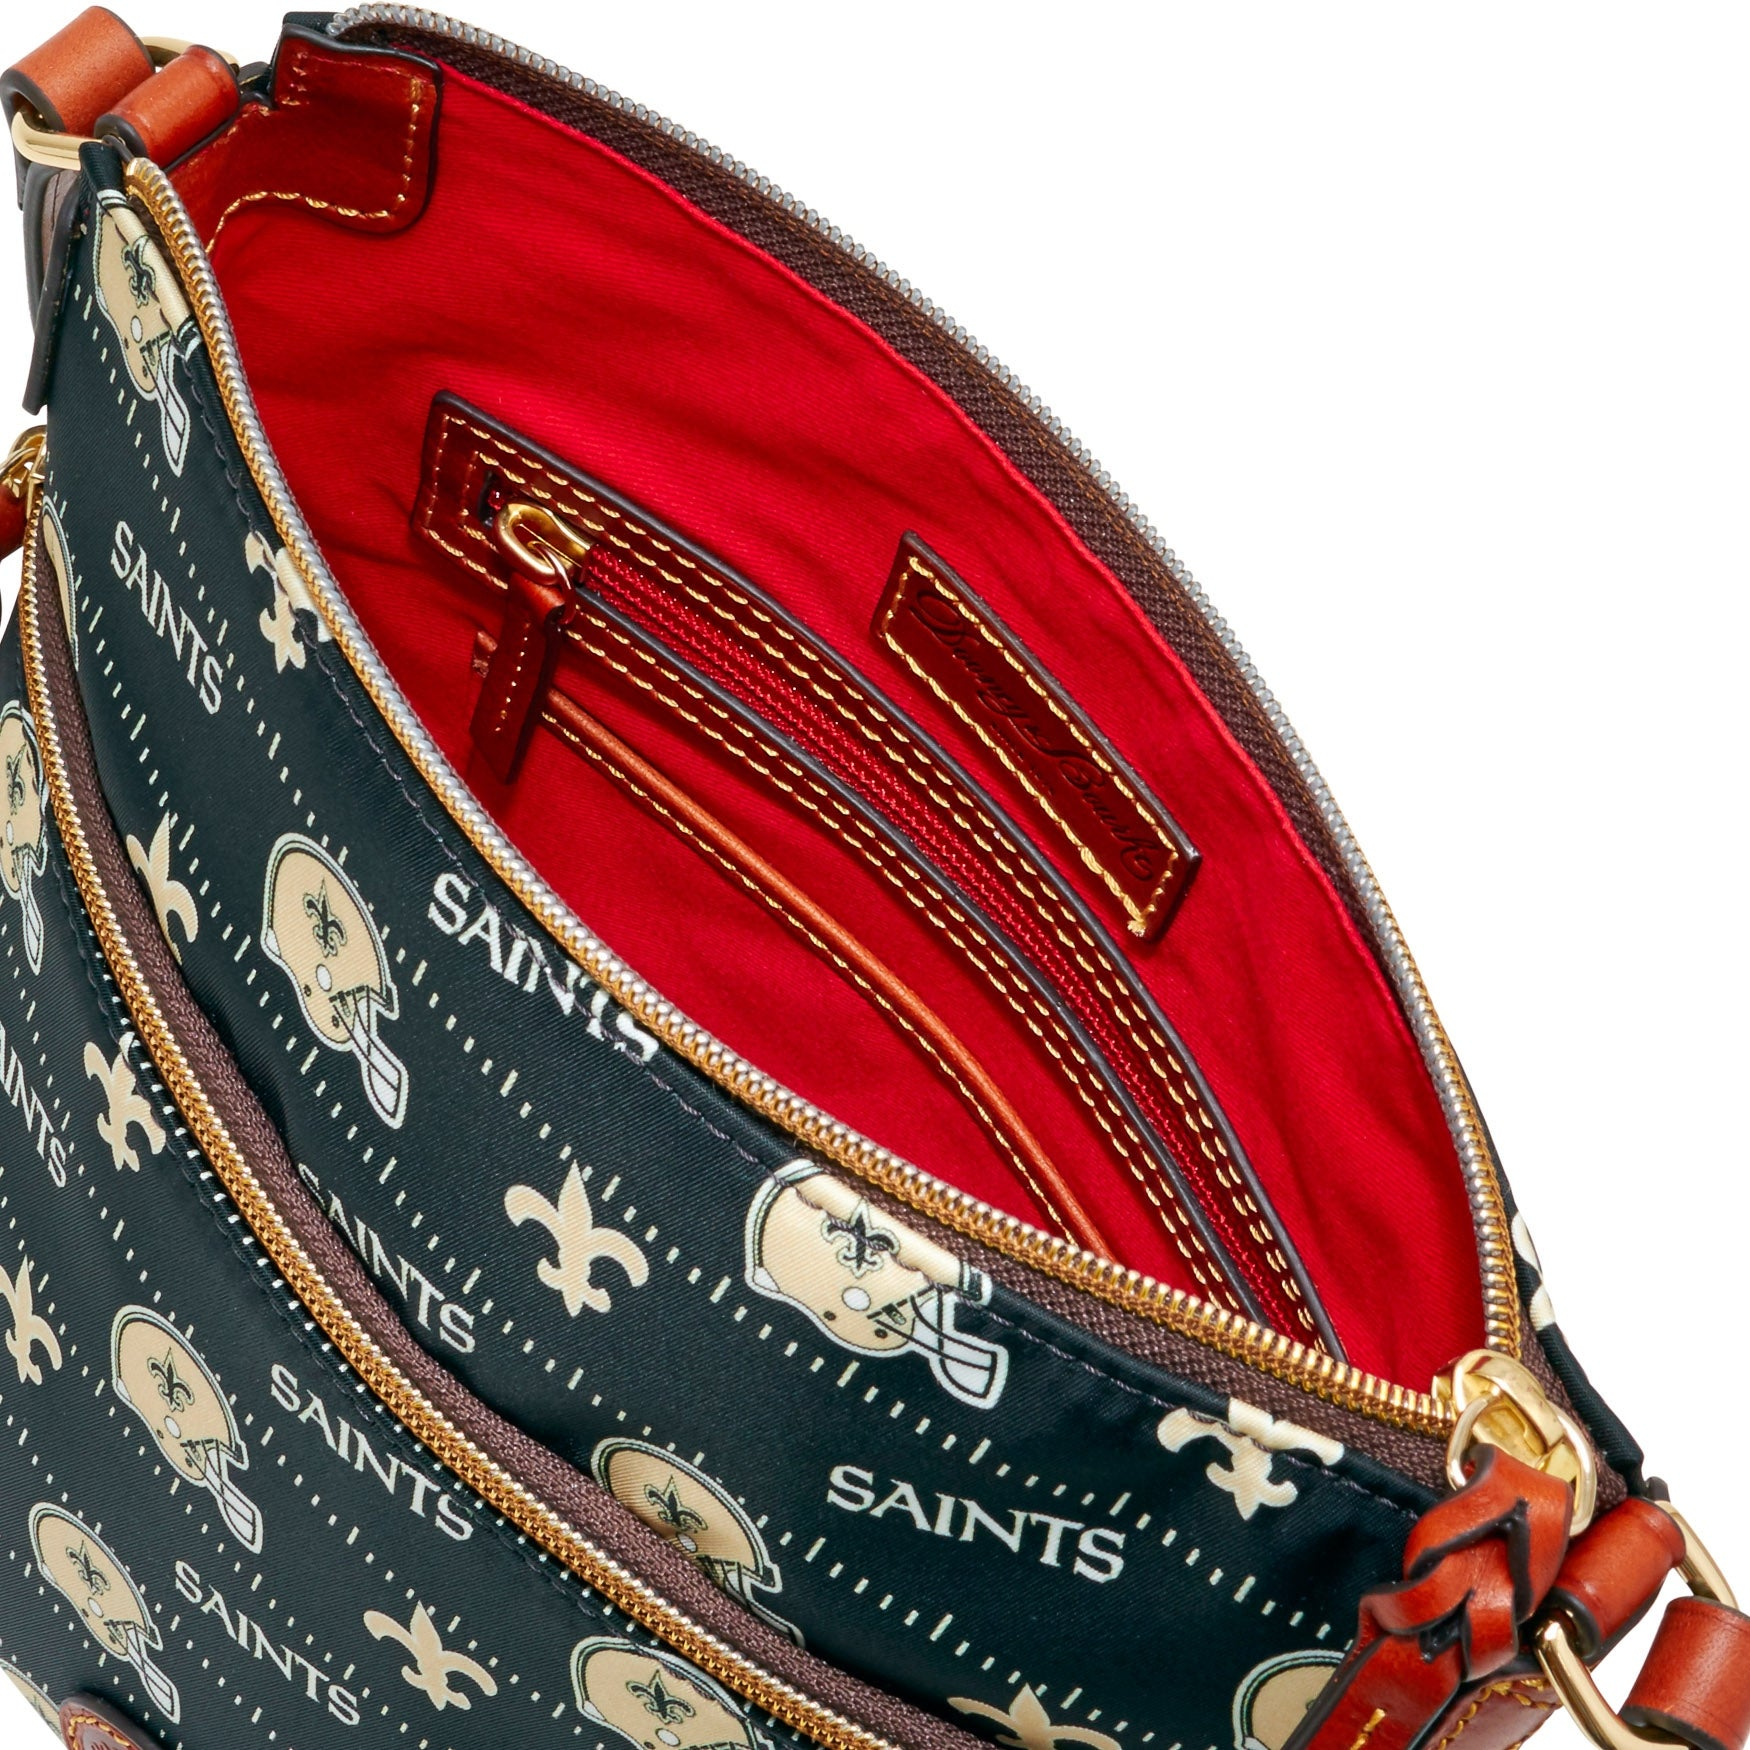 e2d049531c Shop Dooney   Bourke NFL New Orleans Saints Crossbody Shoulder Bag  (Introduced by Dooney   Bourke at  148 in Aug 2017) - Free Shipping Today -  Overstock - ...